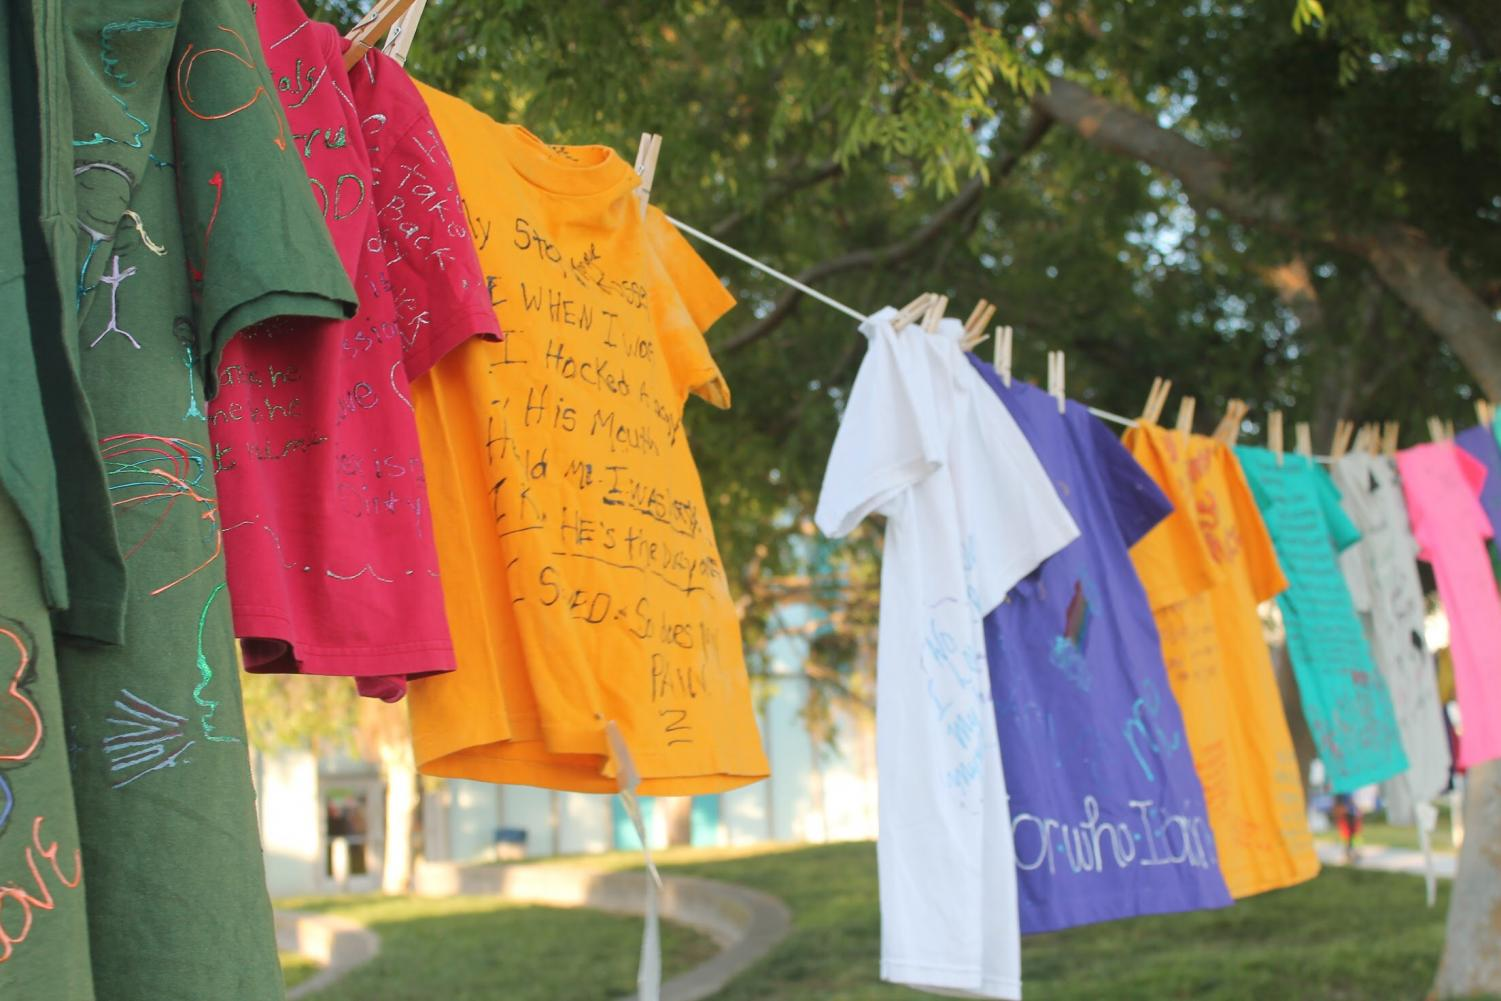 The Clothesline Project was displayed behind the resource booths at Take Back the Night. This idea consisted of shirts given by sexual assault survivors, with their stories written across them.